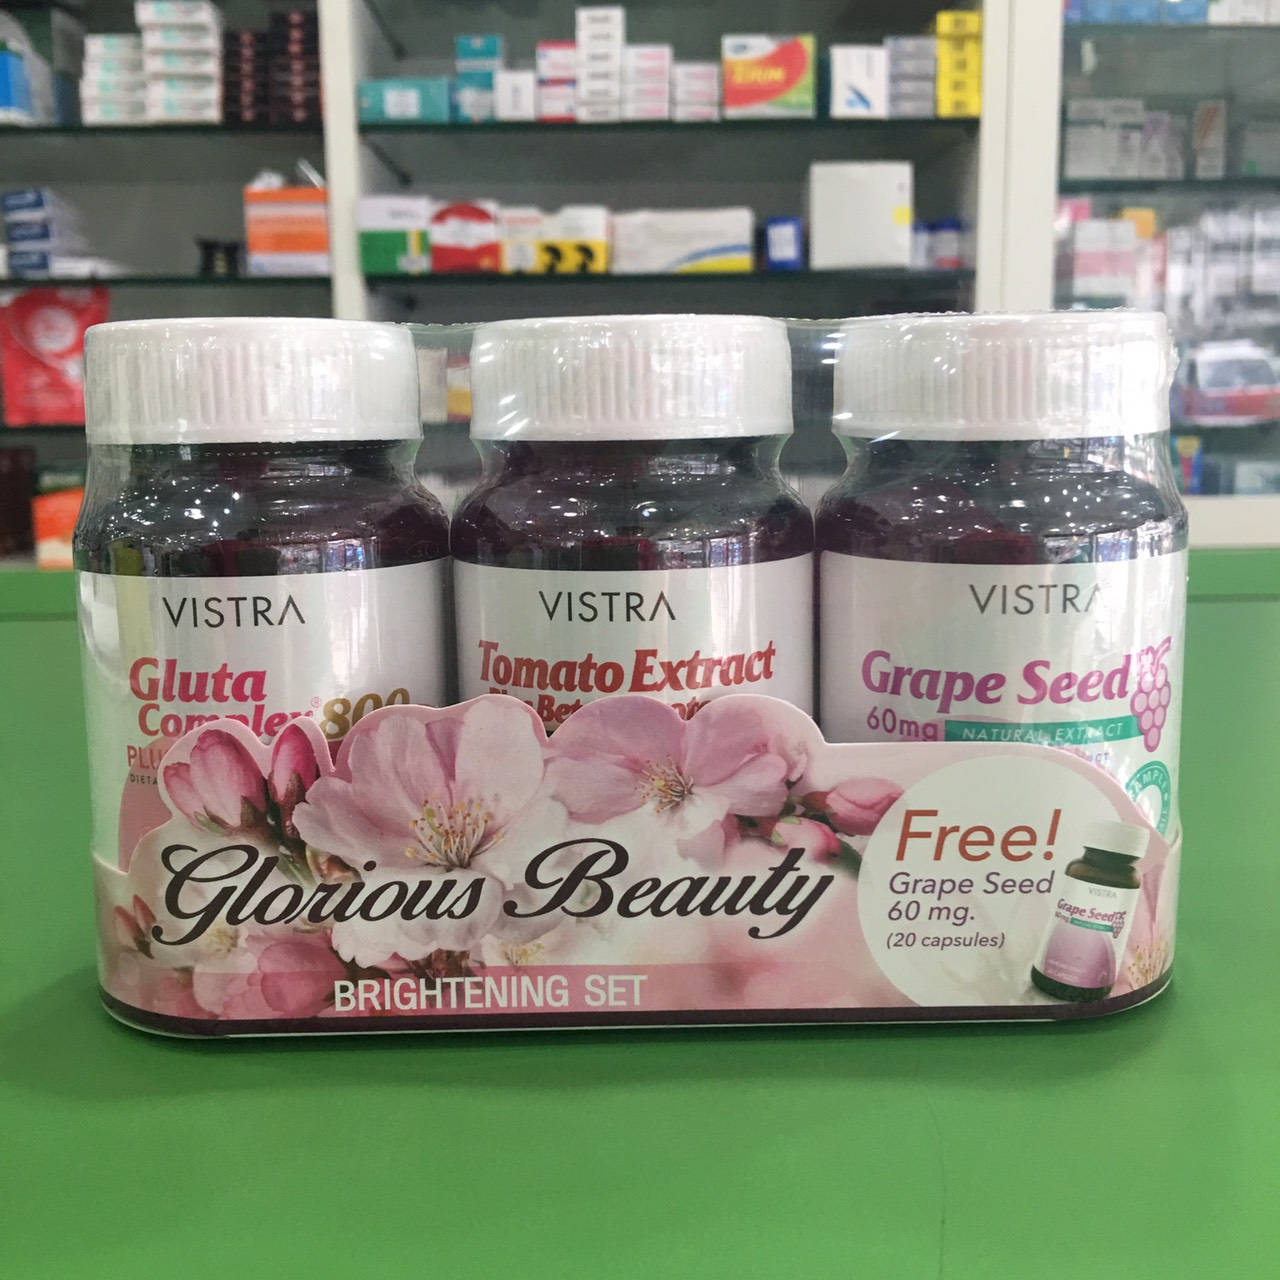 Vistra brightening set - Gluta complex + Tomato extract แถม เมล็ดองุ่น ฟรี